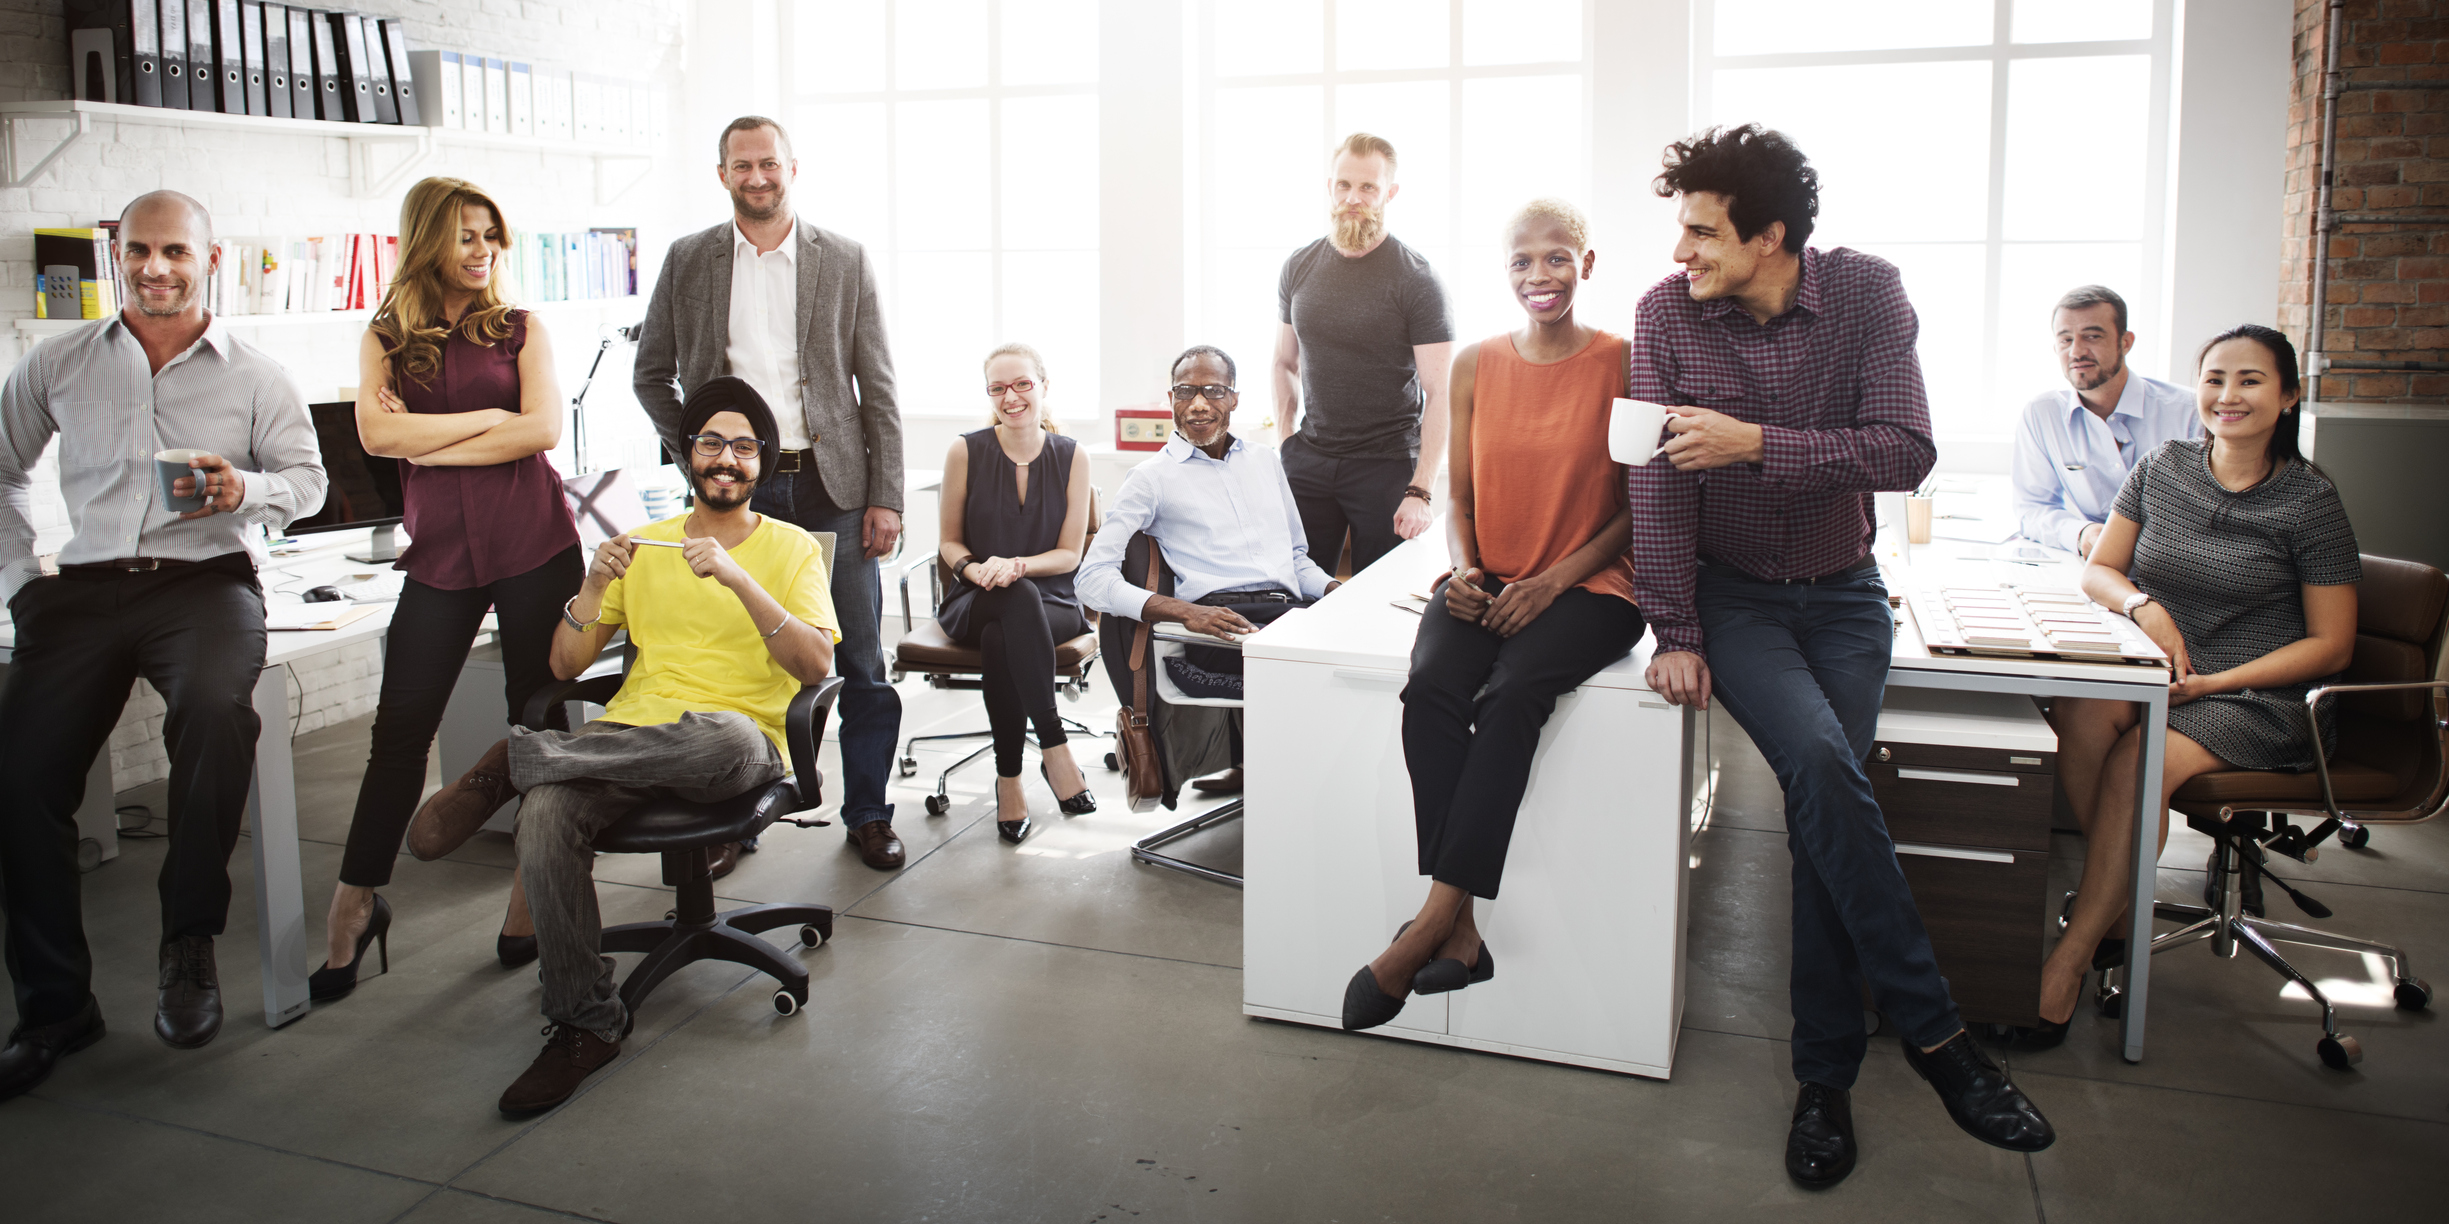 Group of coworkers sitting and standing in an office environment